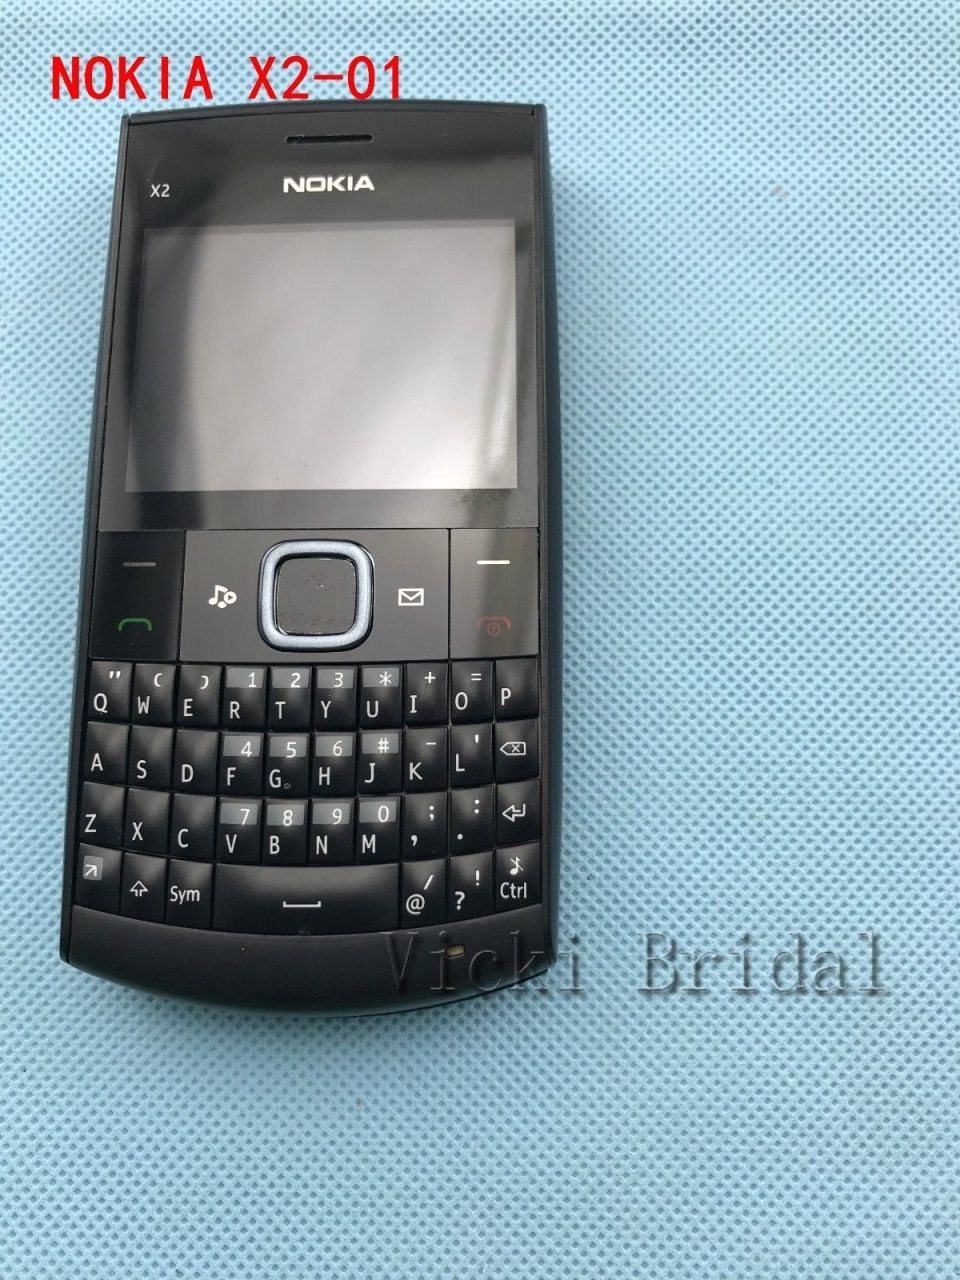 Refurbished phone Nokia X2-01 Symbian OS Computer Keyboard Mobile Phone Fashion Cell Phones blue 2